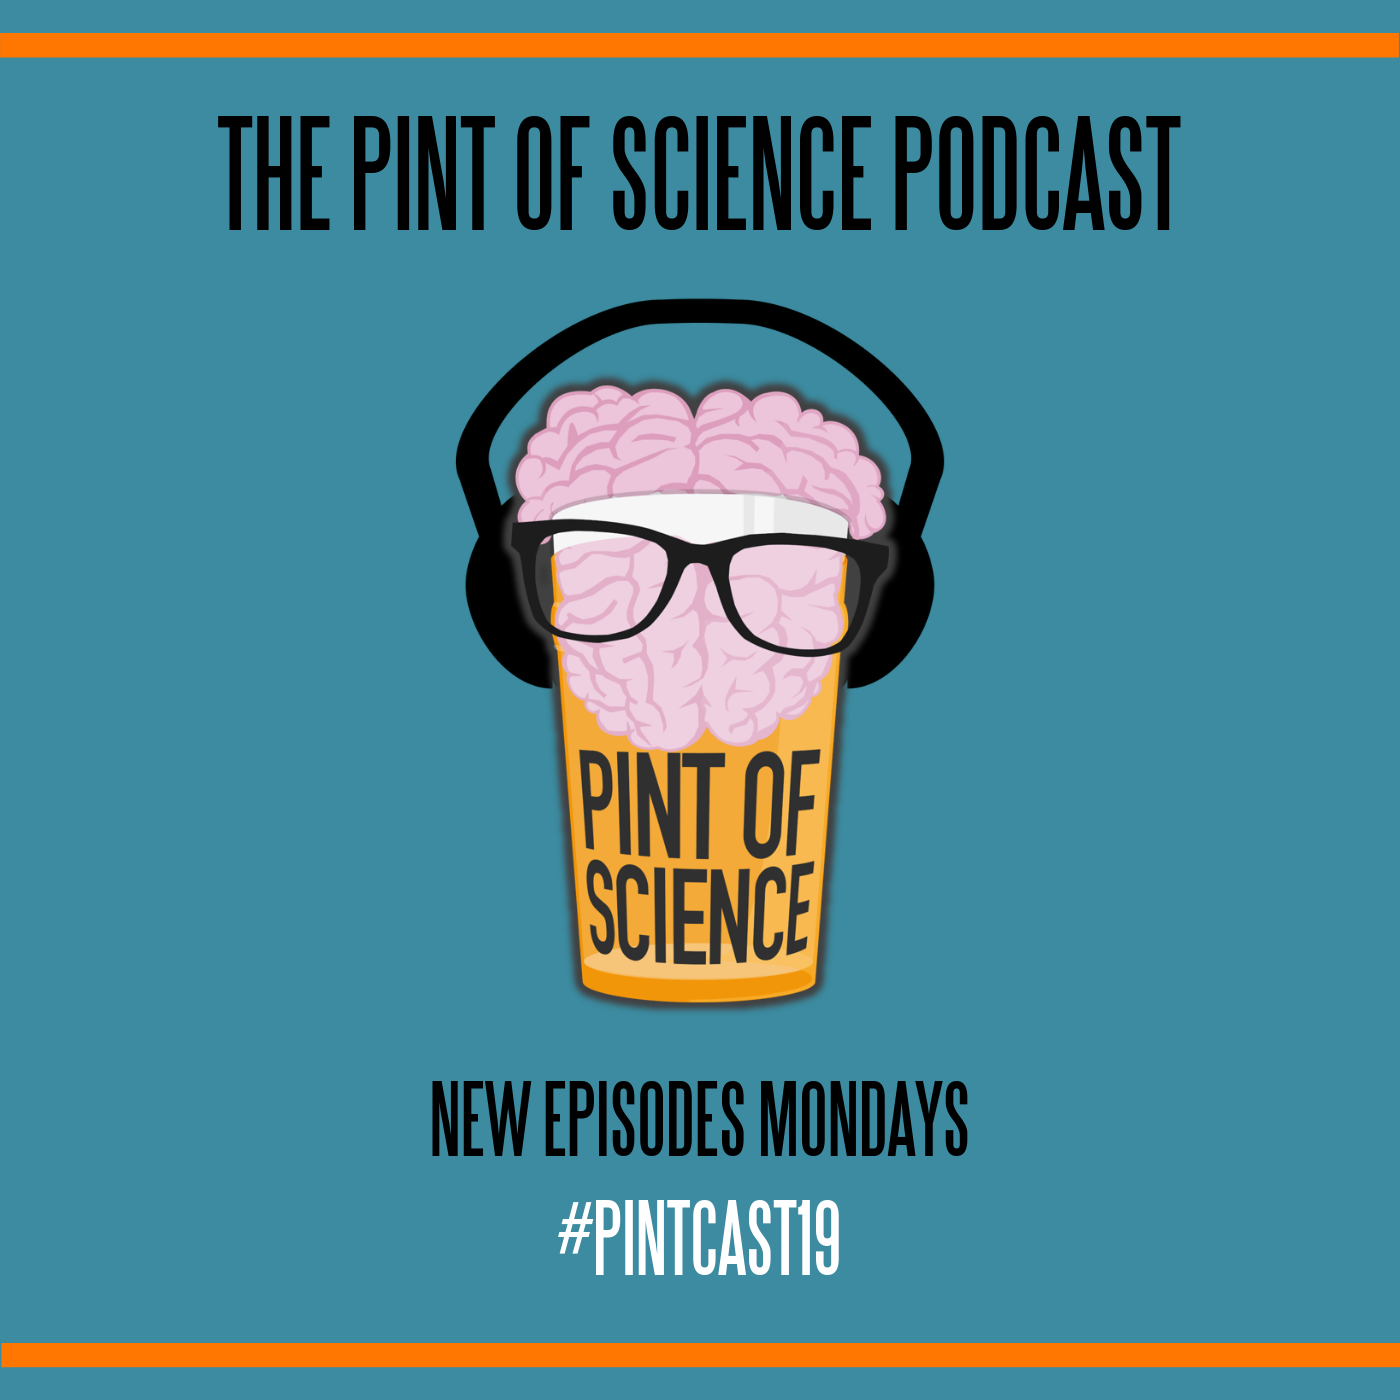 Pint of Science Podcast - Dr Raia Hadsell - Artificial Intelligence researcher [Episode 10]